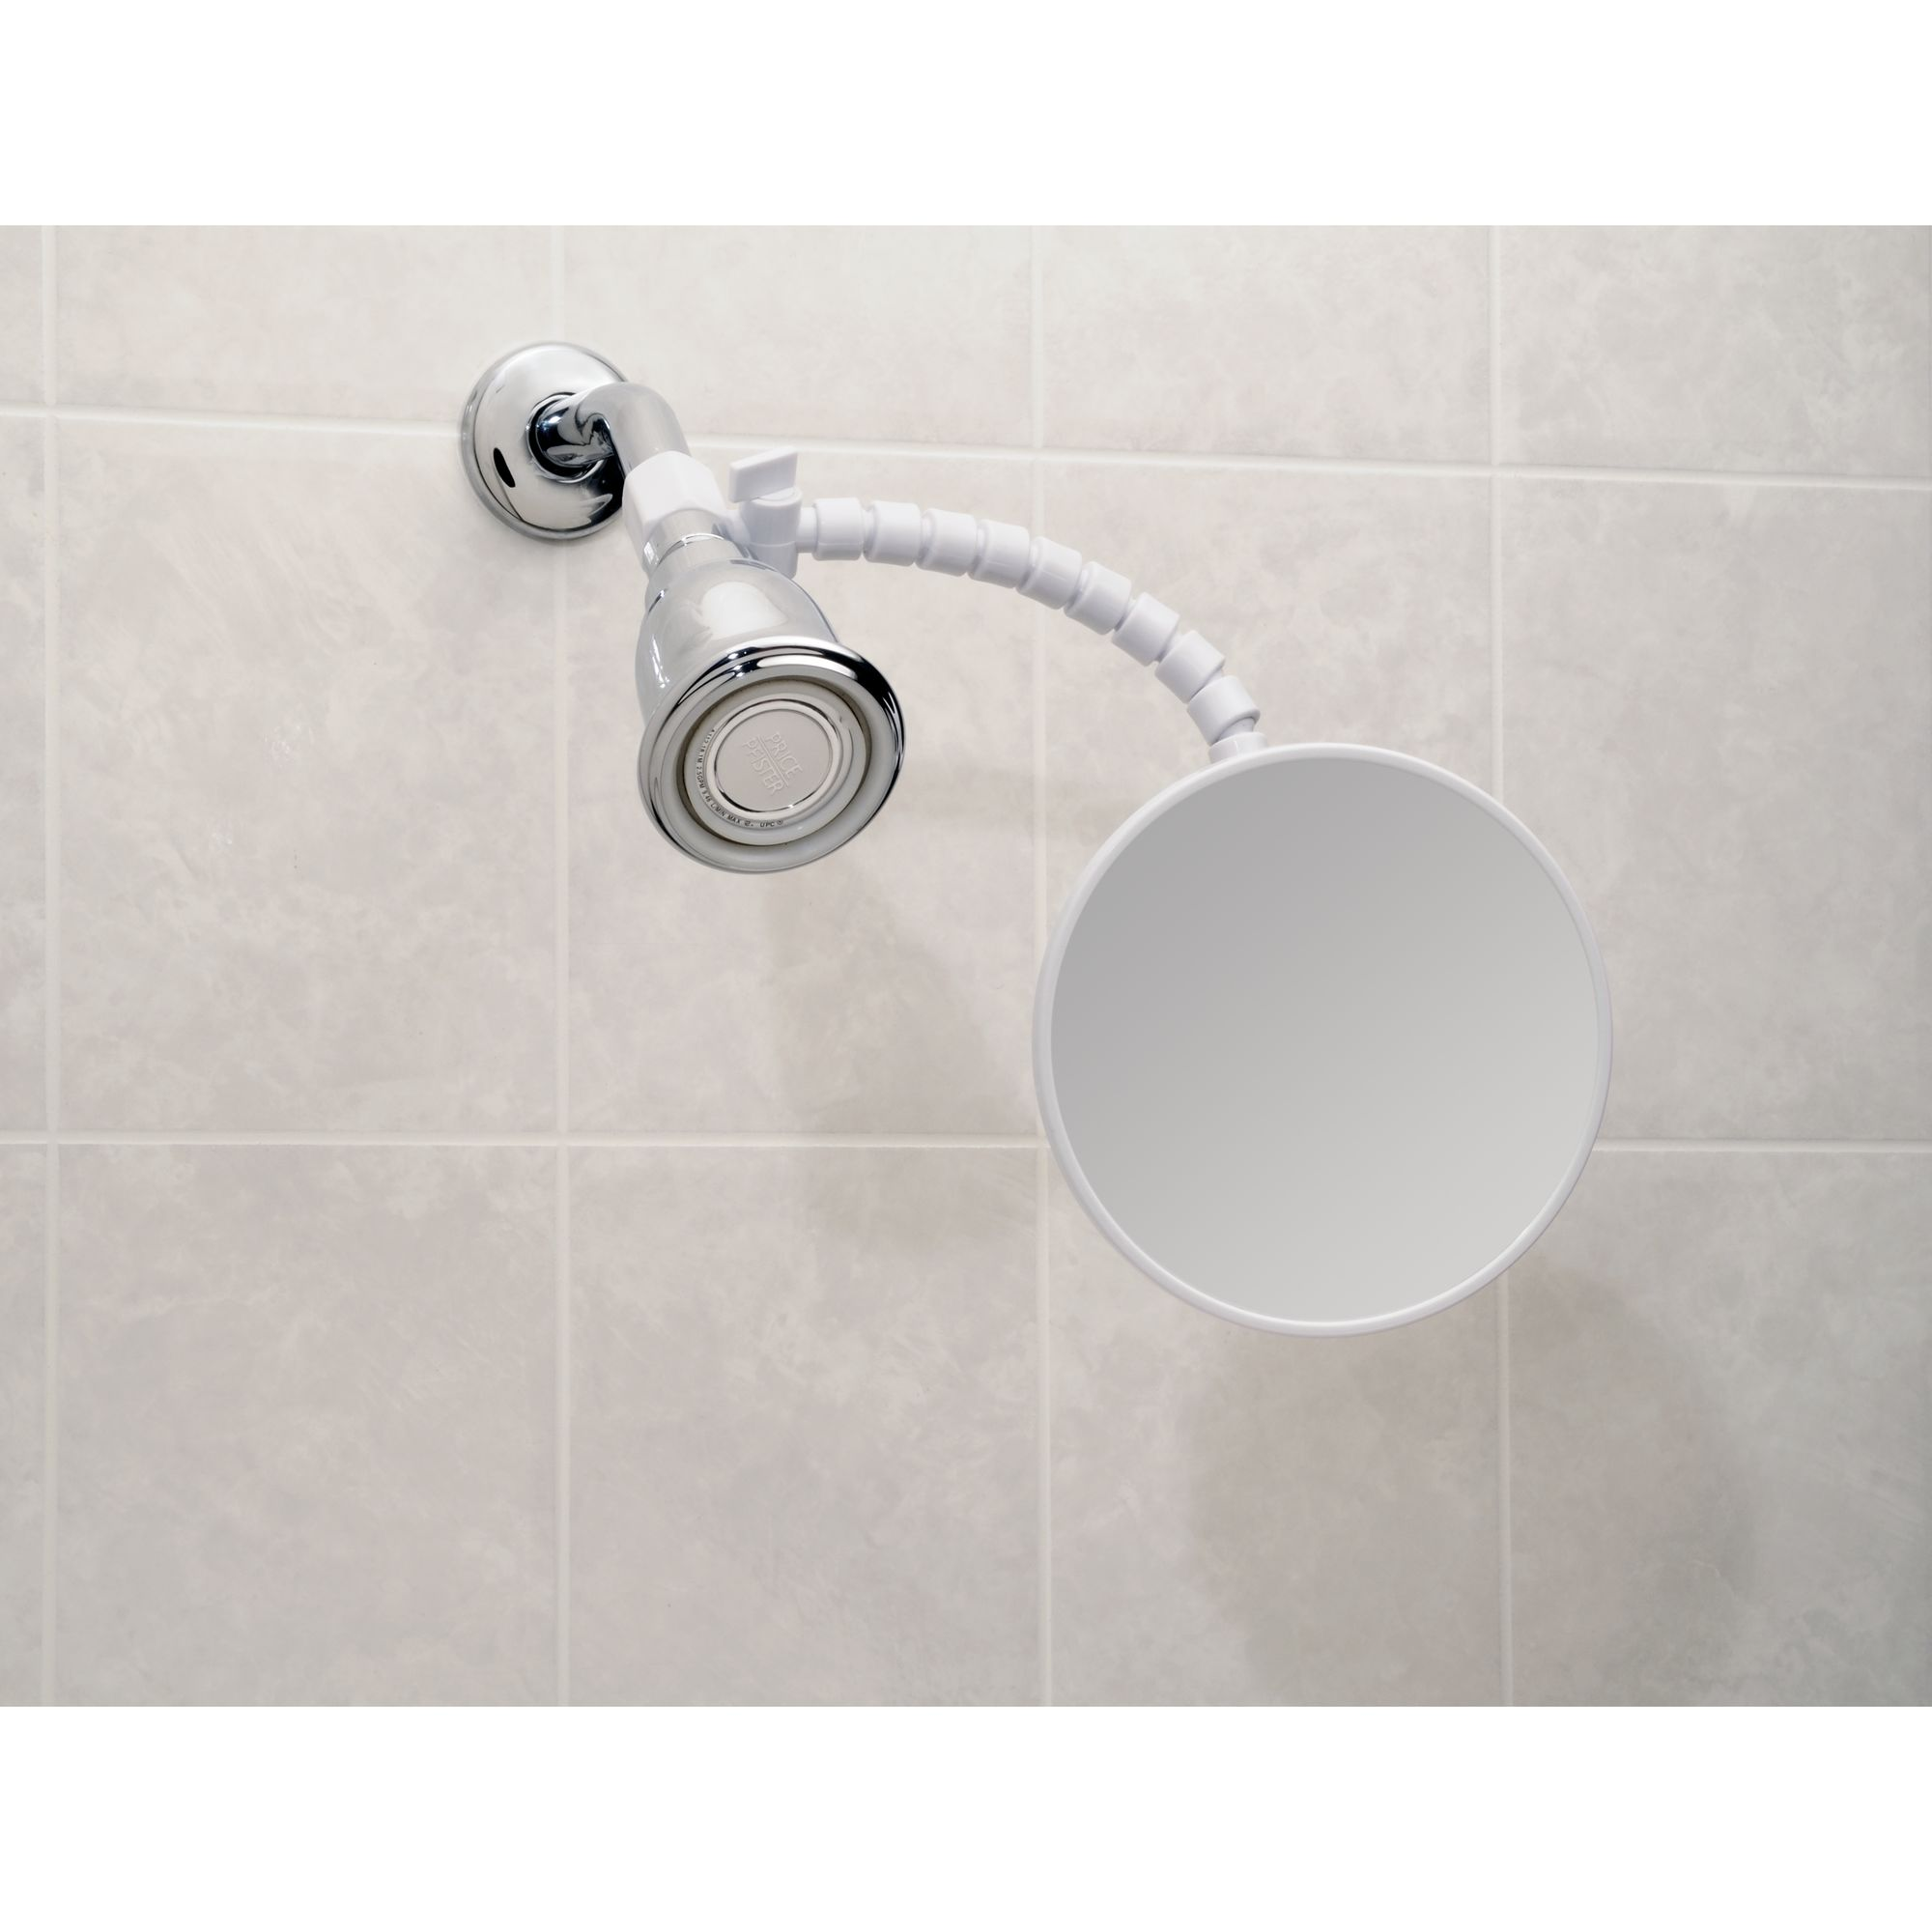 InterDesign Fog Free Shower Mirror - Walmart.com